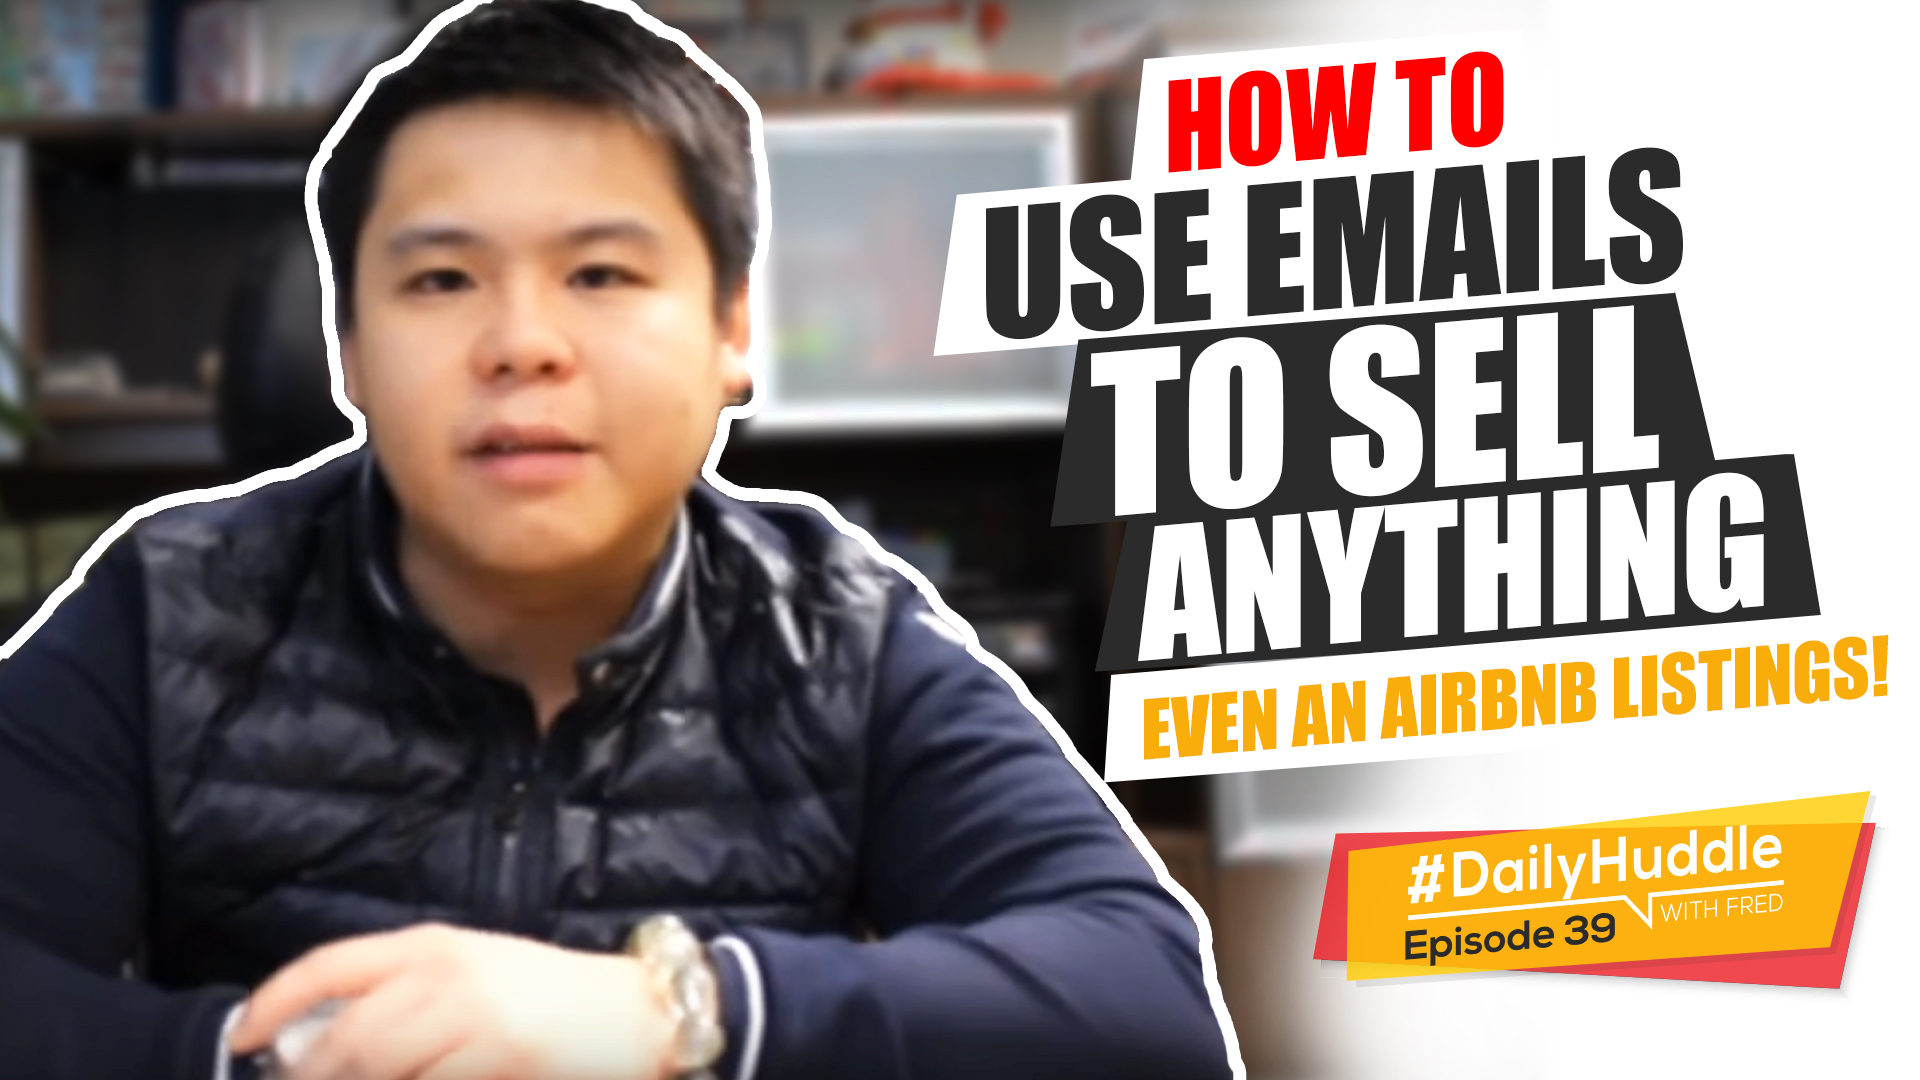 Ep 39 | How To Use EMAILS To Sell ANYTHING - Even An AirBnB Listings!